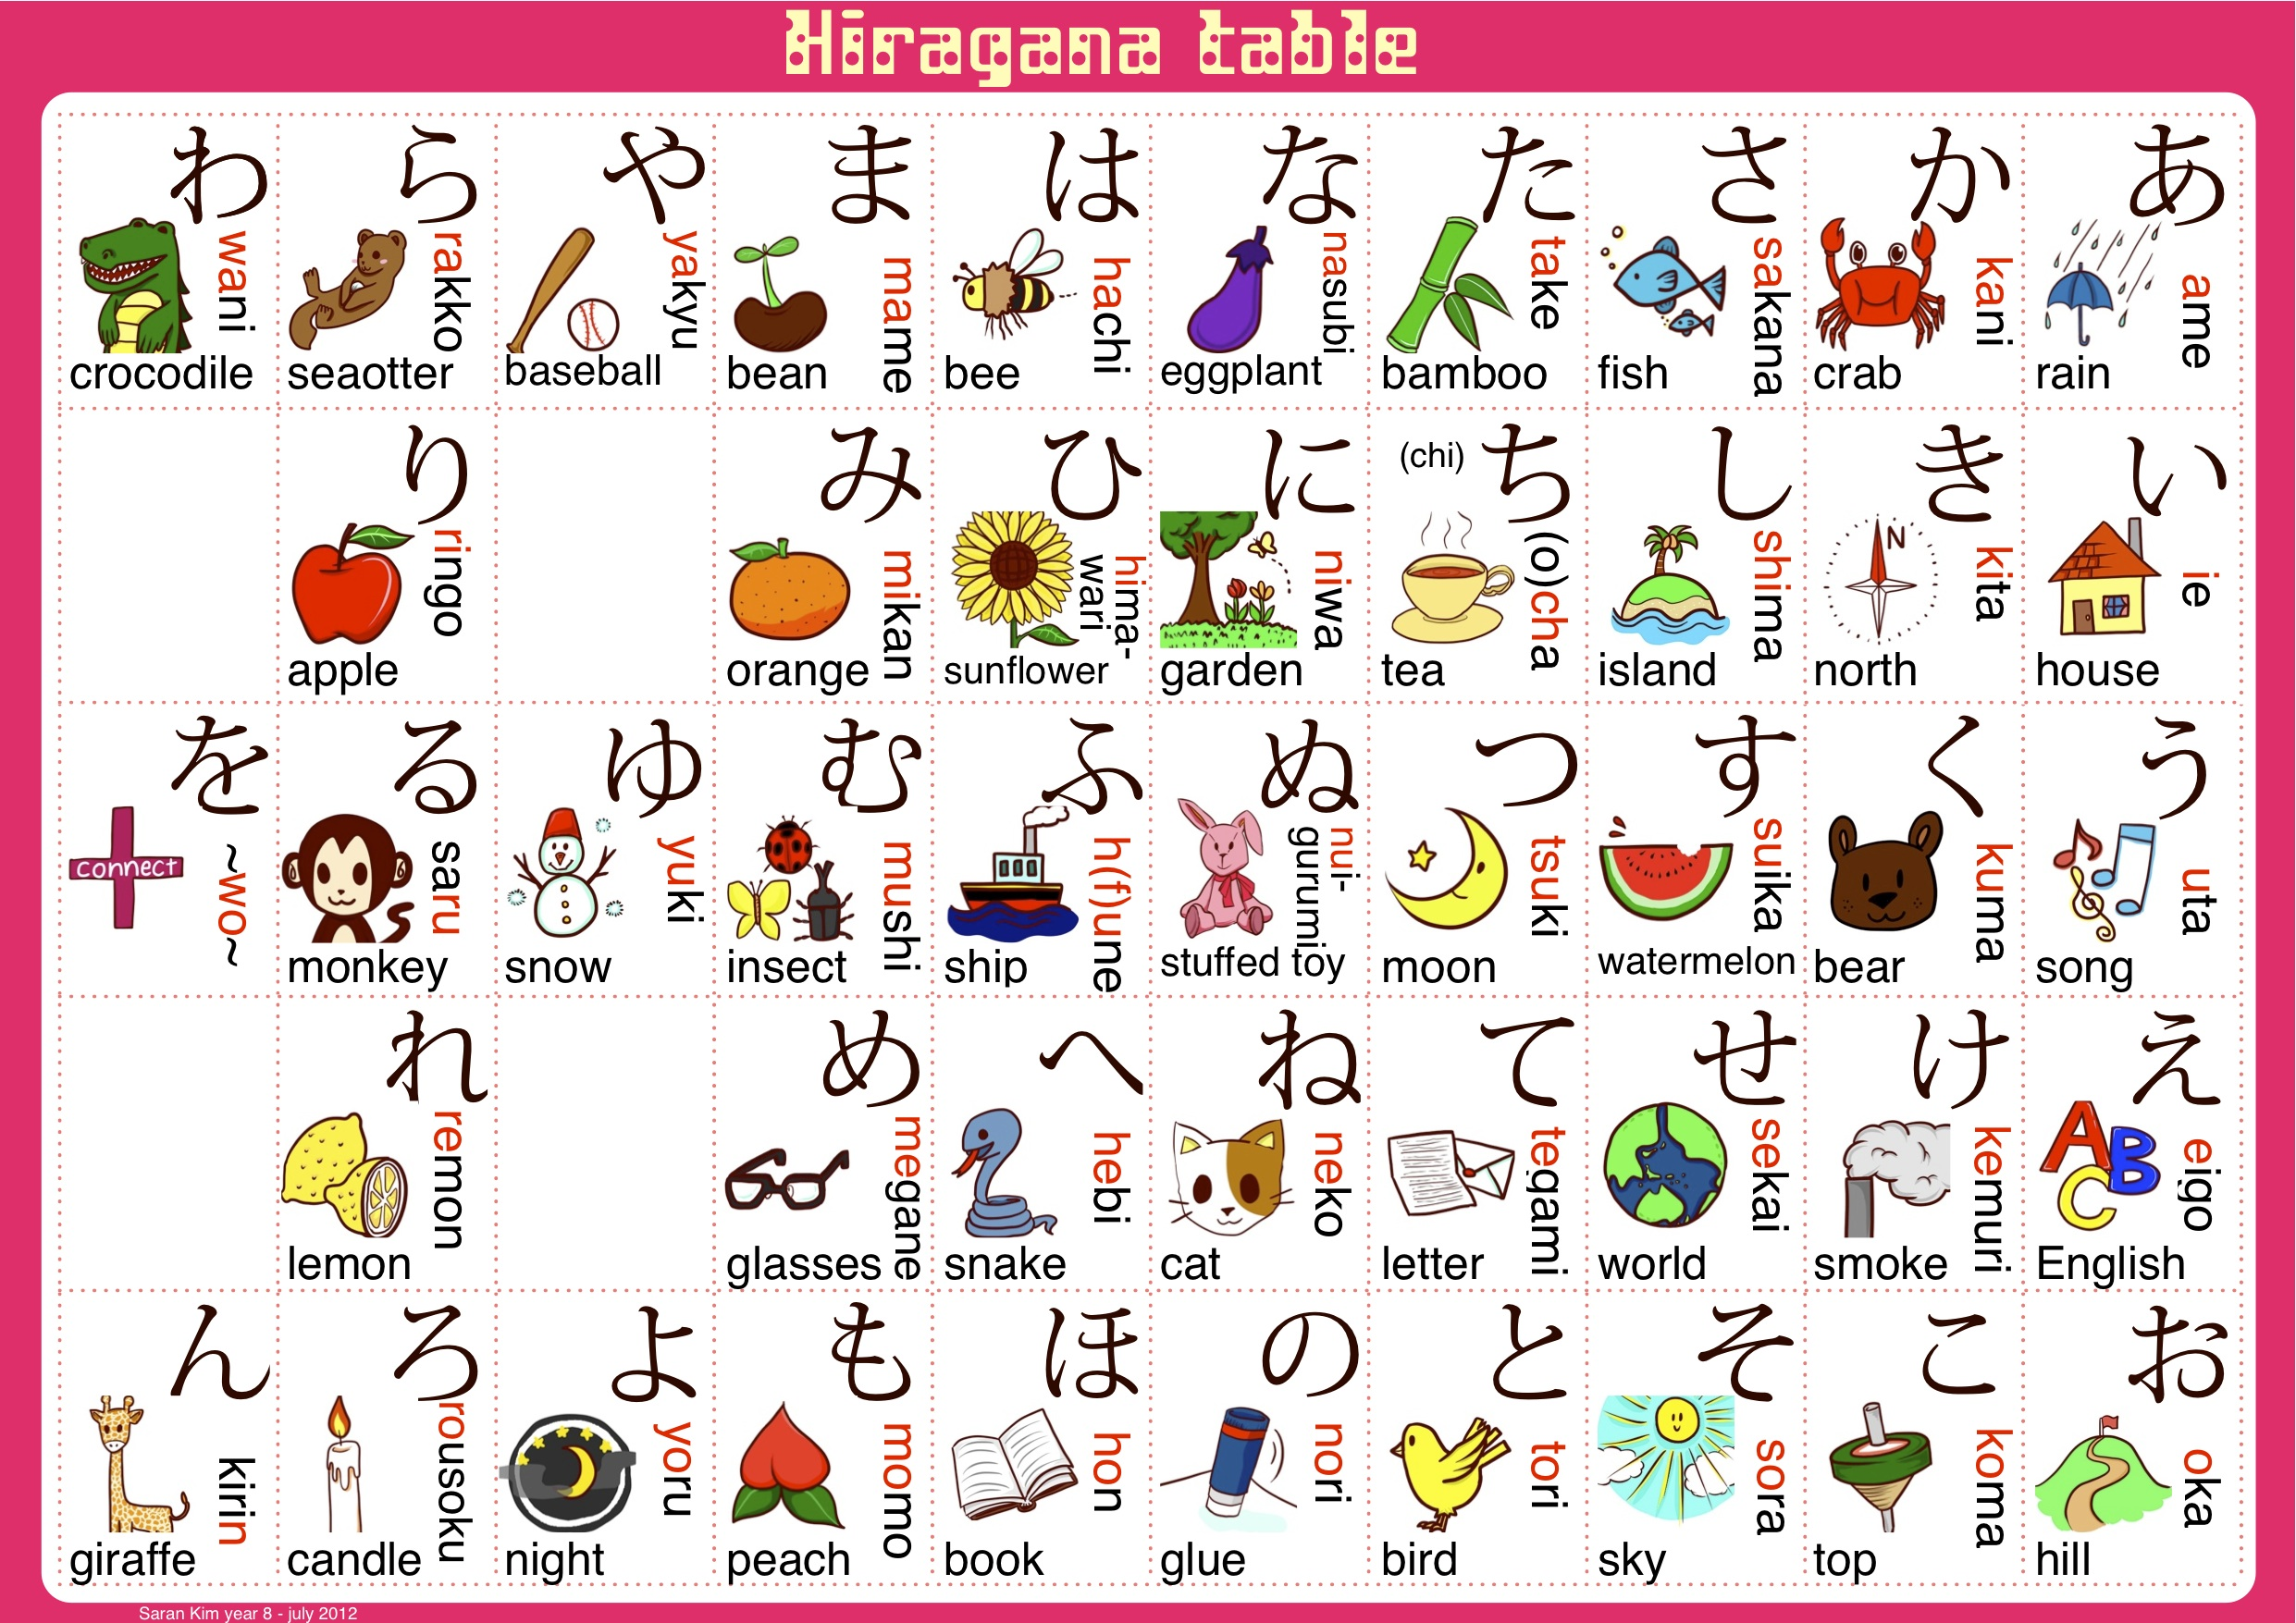 Hiragana Table Saran Kim